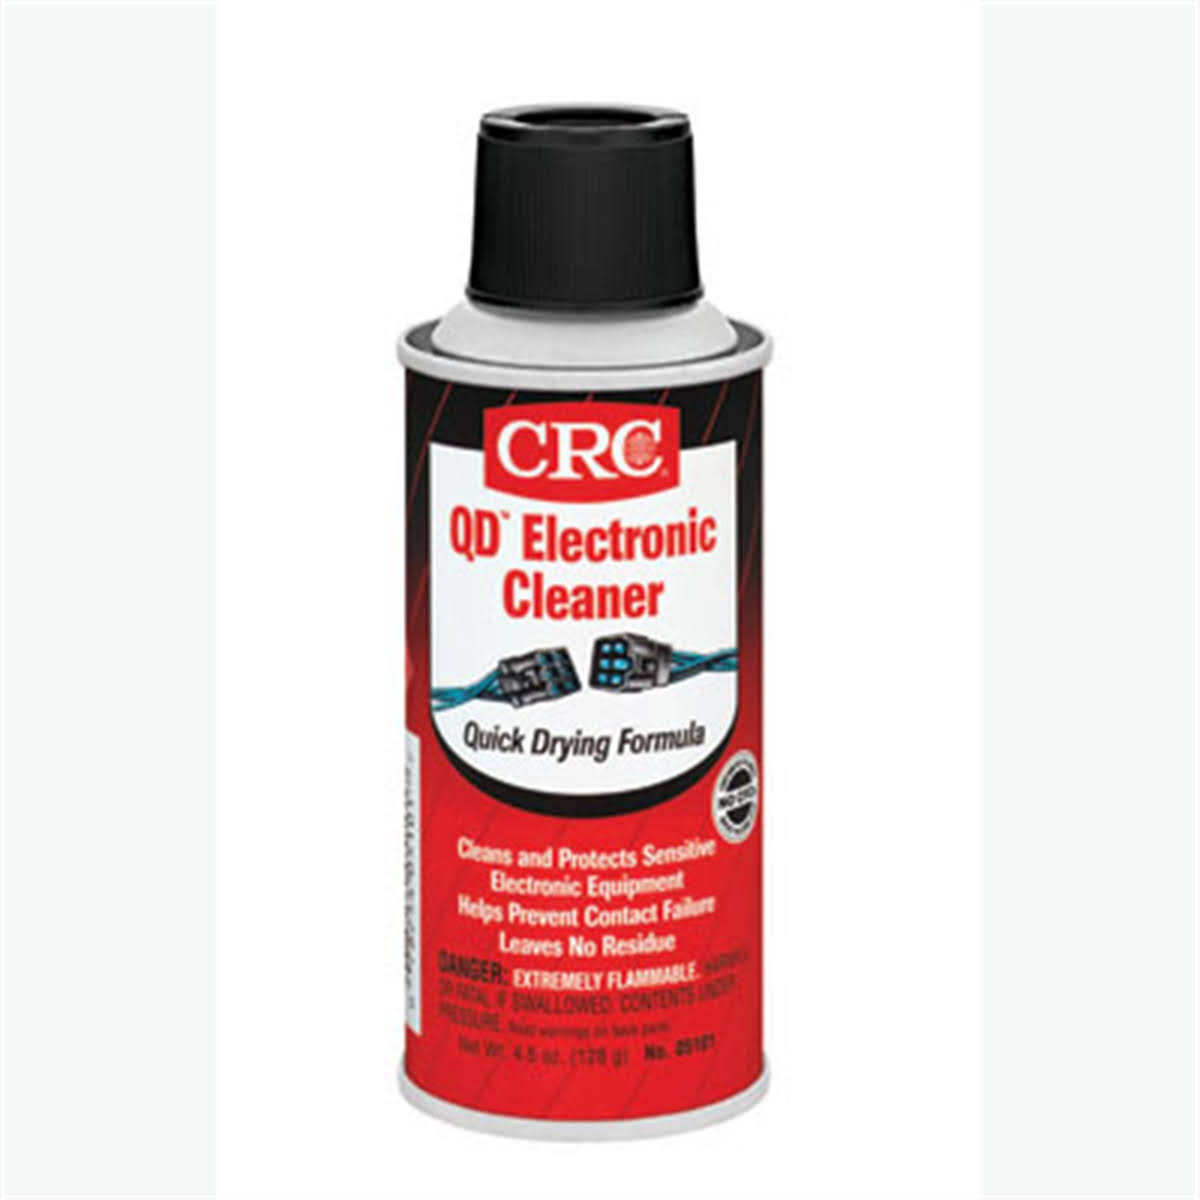 CRC QD Electronic Cleaner - 128g